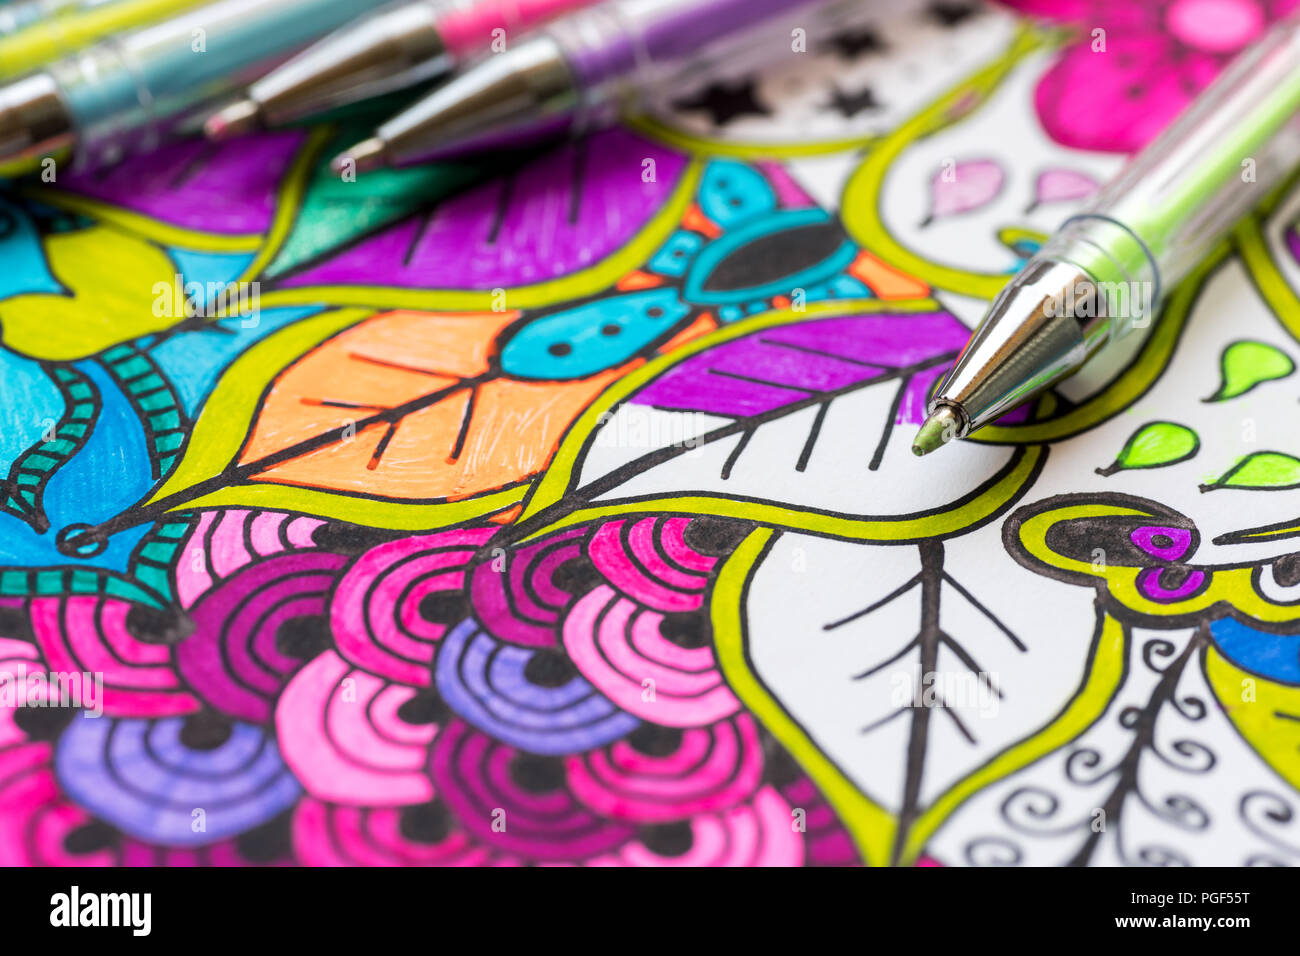 Adult Coloring Book New Stress Relieving Trend Art Therapy Mental Health Creativity And Mindfulness Concept Adult Coloring Page With Pastel Color Stock Photo Alamy